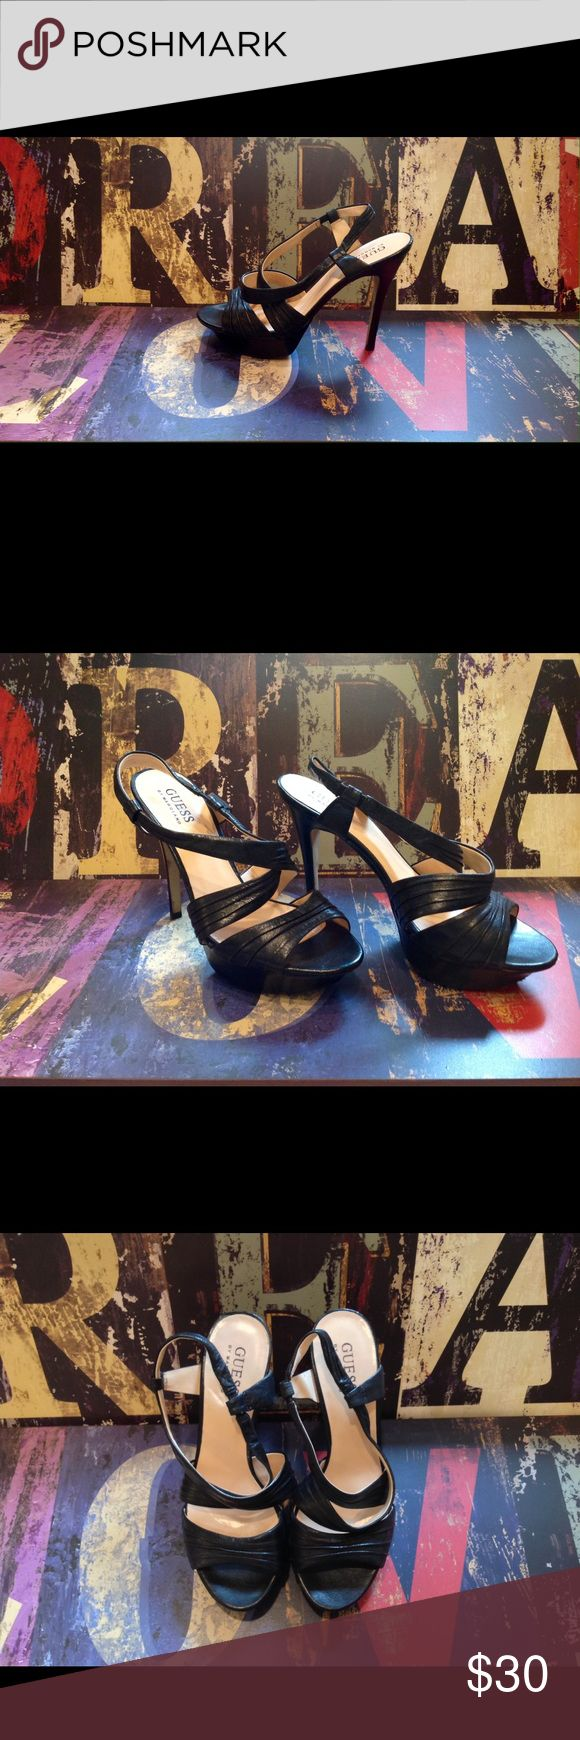 "GUESS Black Strap Heels 👠 GUESS Strap Heels 👠 Criss Cross Slip On with a 4 3/4"" Heel and 1"" Platform, Genuine Leather, EUC (worn half dozen times), some scuffing on soles ... Look great with skinny jeans or little black dress! Guess Shoes Heels"